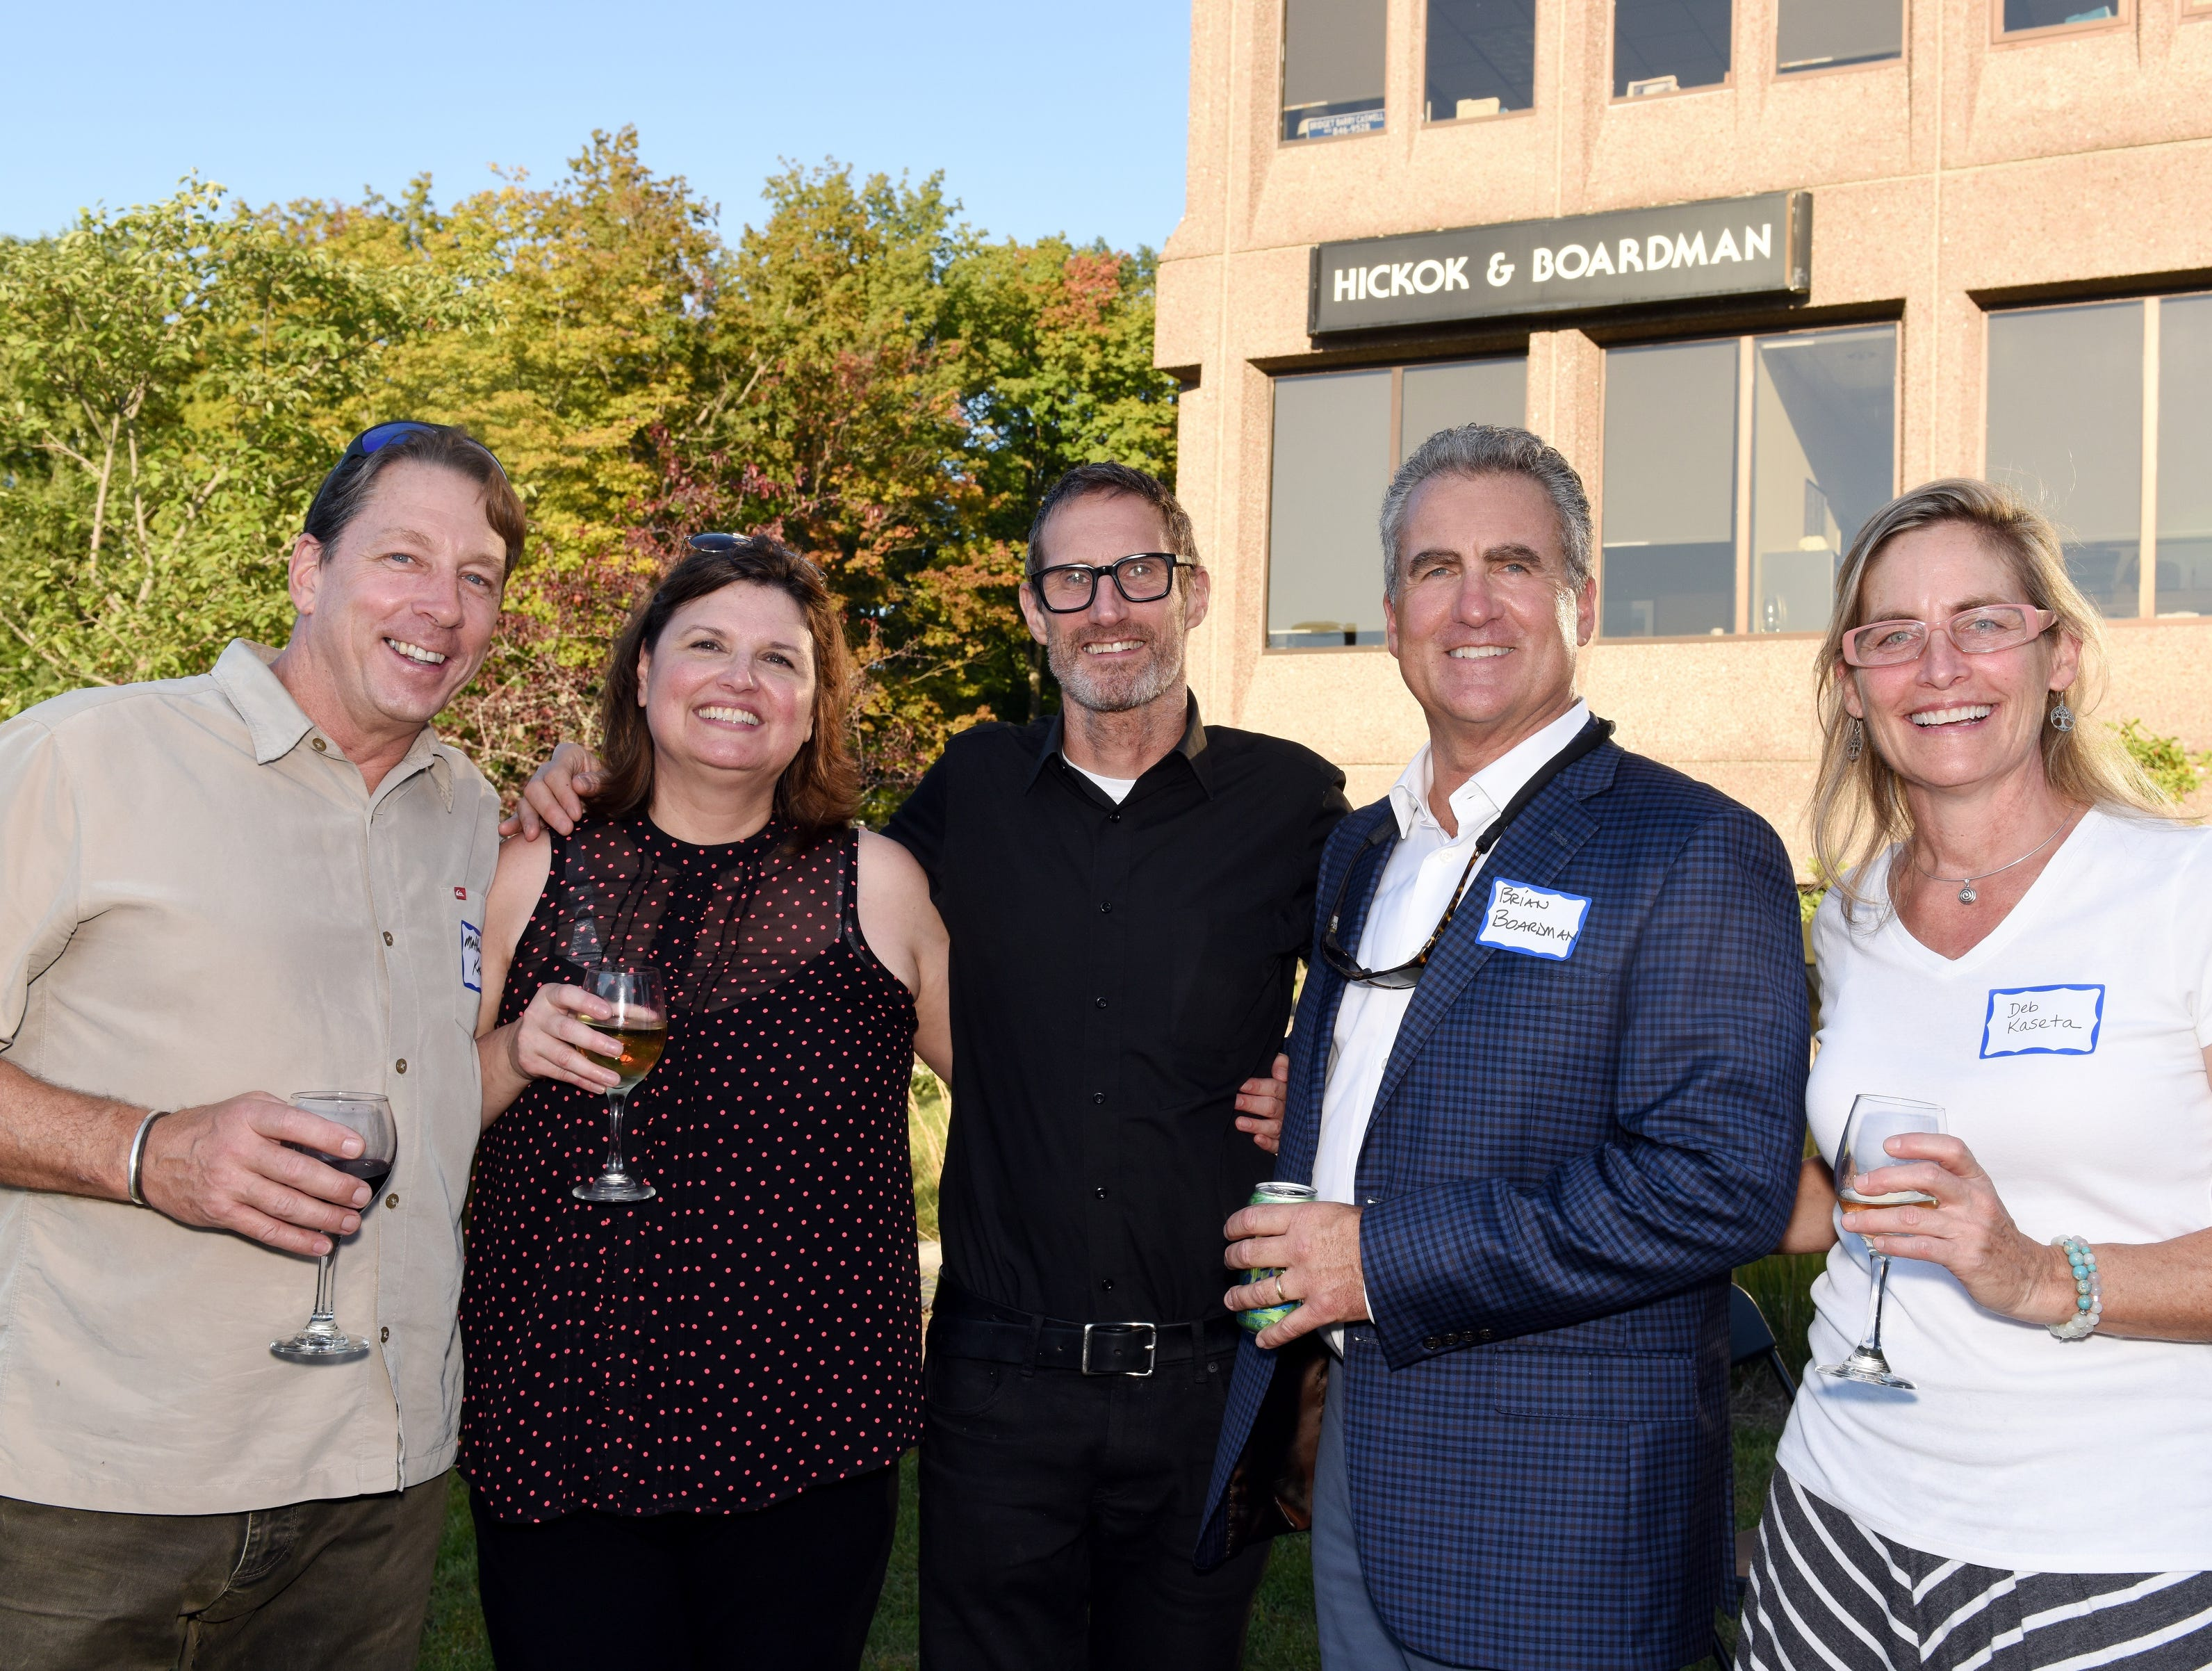 Matthew Kaseta, Claire Smith, Michael Jager of Solidarity, Brian Boardman, and Deb Kaseta came to celebrate the Coldwell Banker Hickok & Boardman Realty's 60th Anniversary on September 13, 2018, with current and past agents and community leaders in Burlington, VT.